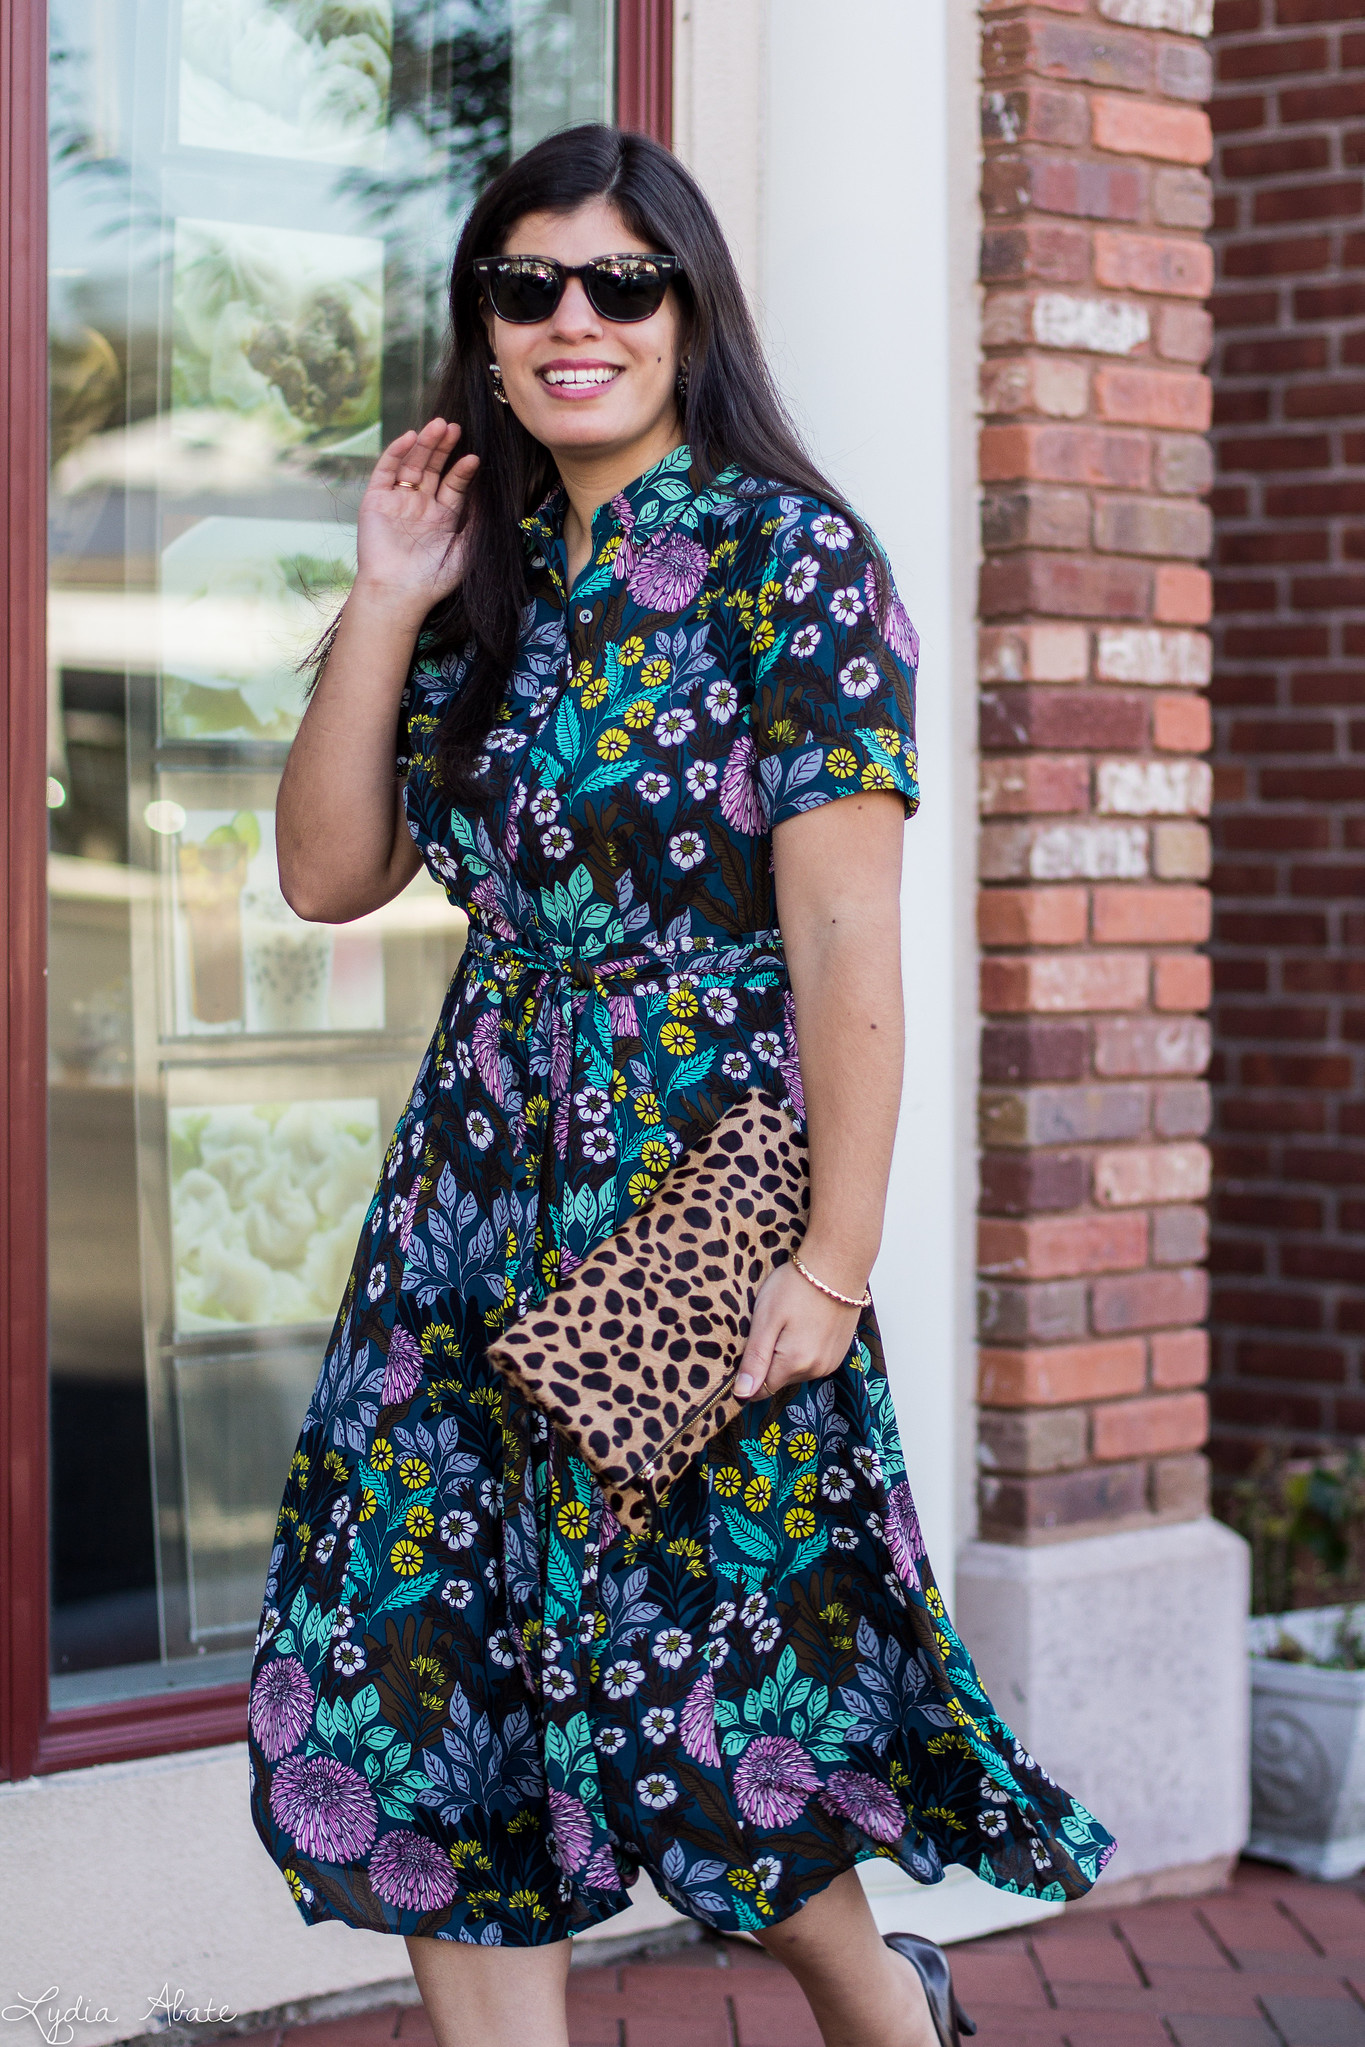 J.Crew X Abigail Borg shirtdress, leopard clutch, coach pumps-4.jpg